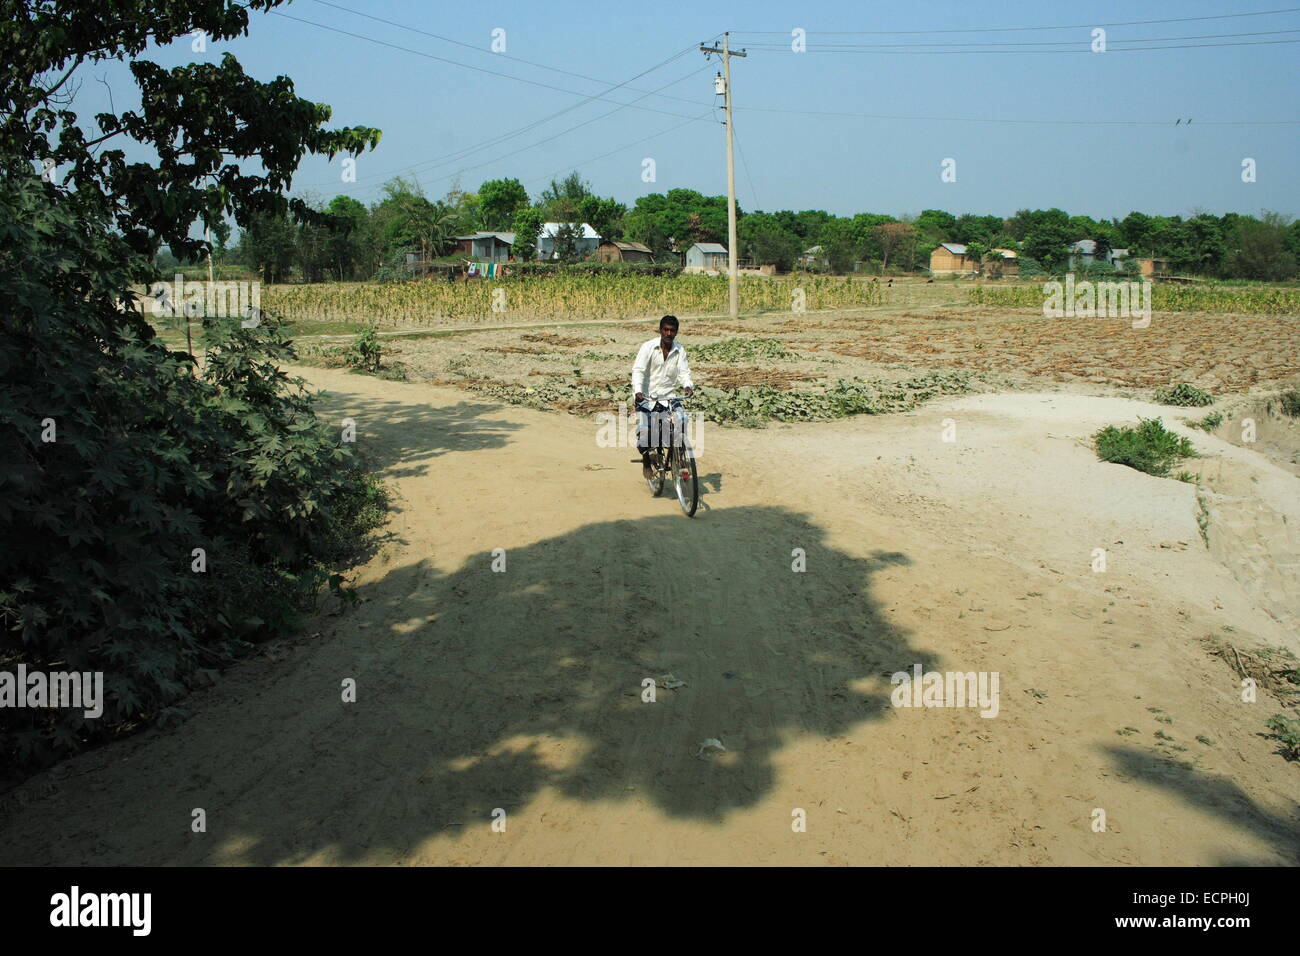 December 2010.Tobacco field in manikganj out site of Dhaka - Stock Image